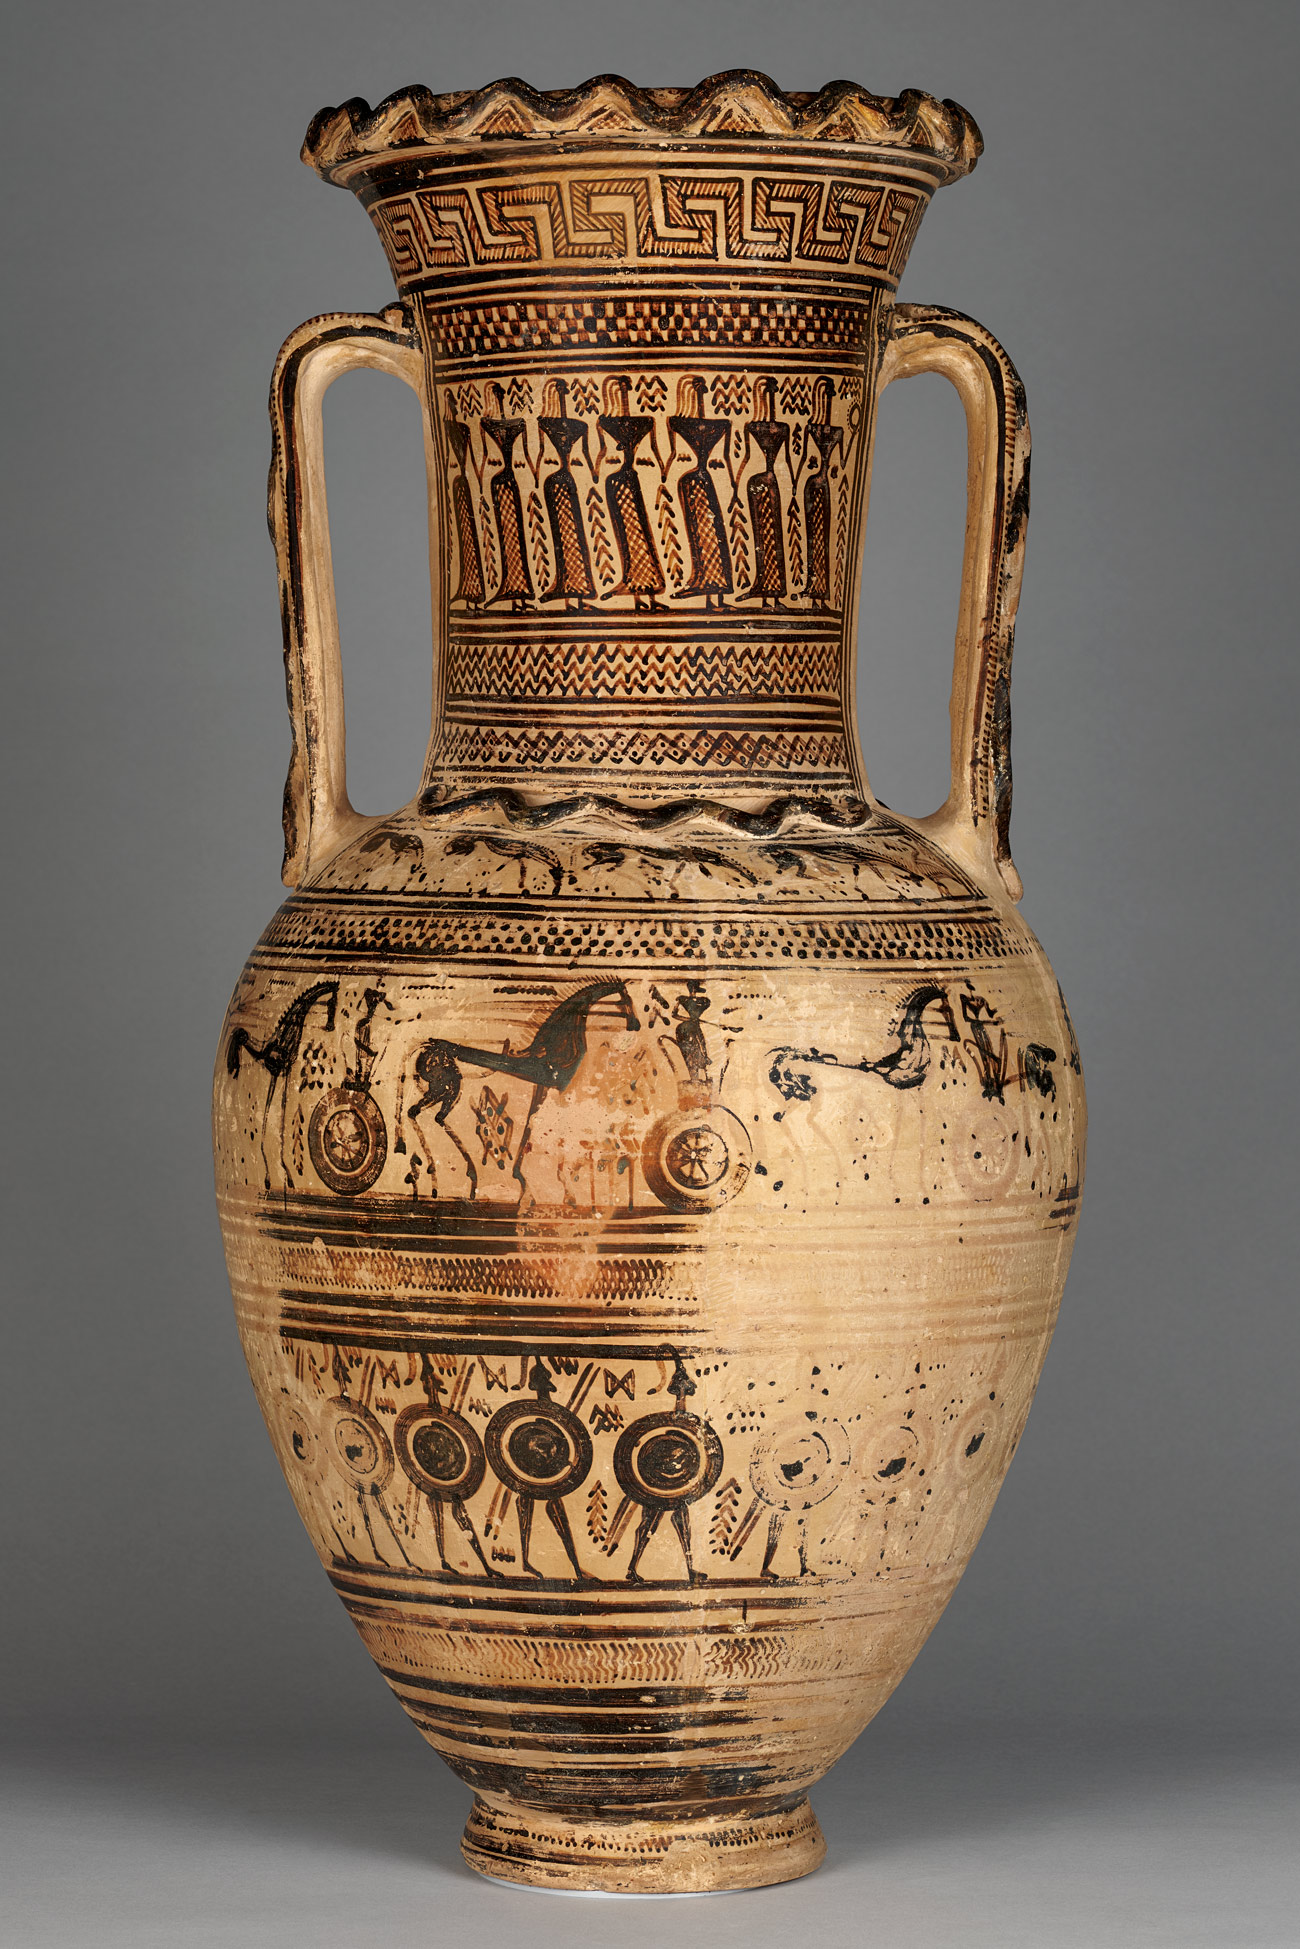 A ceramic vase faded on one side with patterned illustrations including rings of women holding hands, horses and soldiers